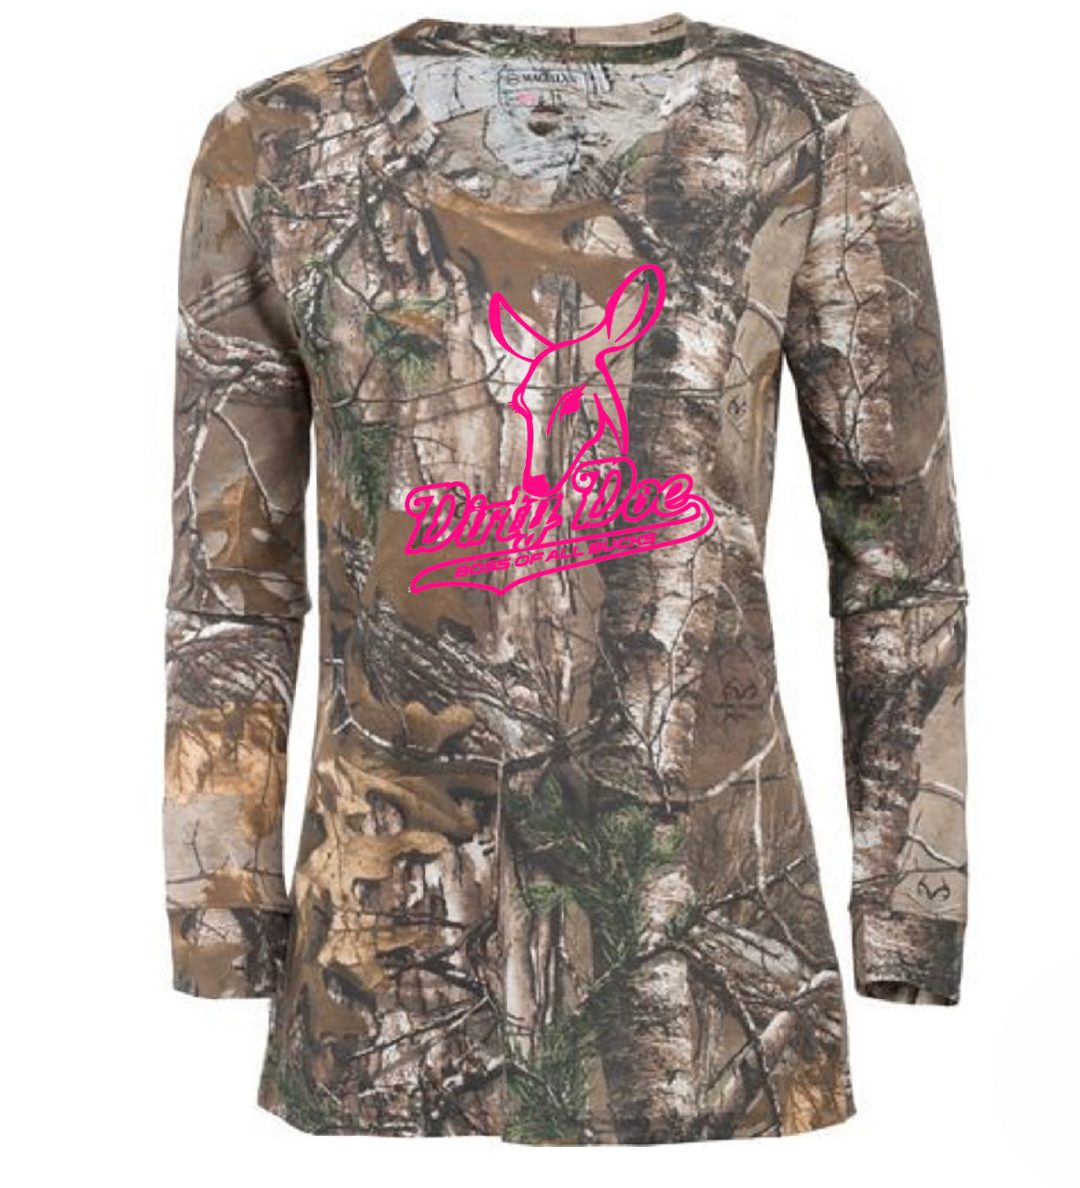 Dirty Doe Boss Of All bucks  Long Sleeve Camo Shirts - Dirty Doe & Buck Wild ,hunting apparel,camo,girls that hunt,huntress, buck wild,deer shirts,buck shirts,country shirt,country girl shirts, amazon,cabelas,bass pro shop,sportmans,